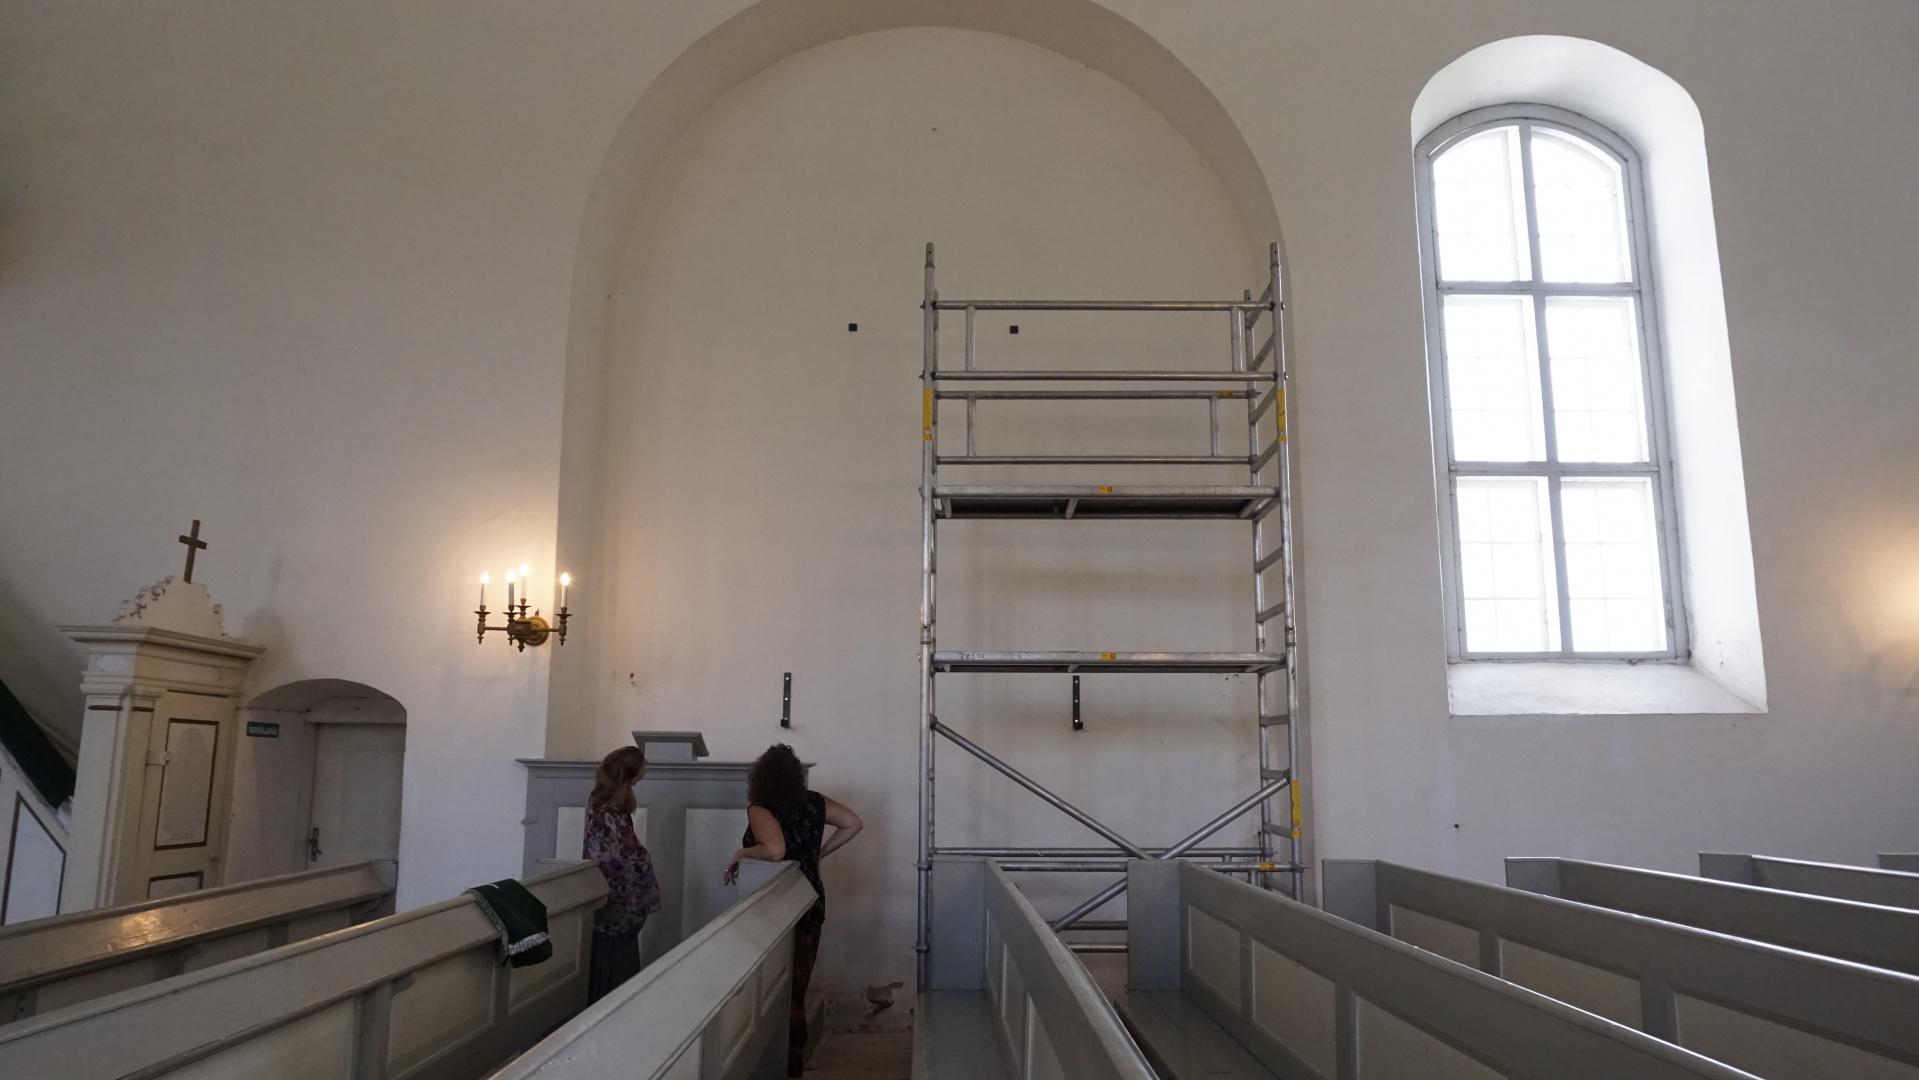 fig 16. Preparation of the place where it was planned to hang the drawing up.